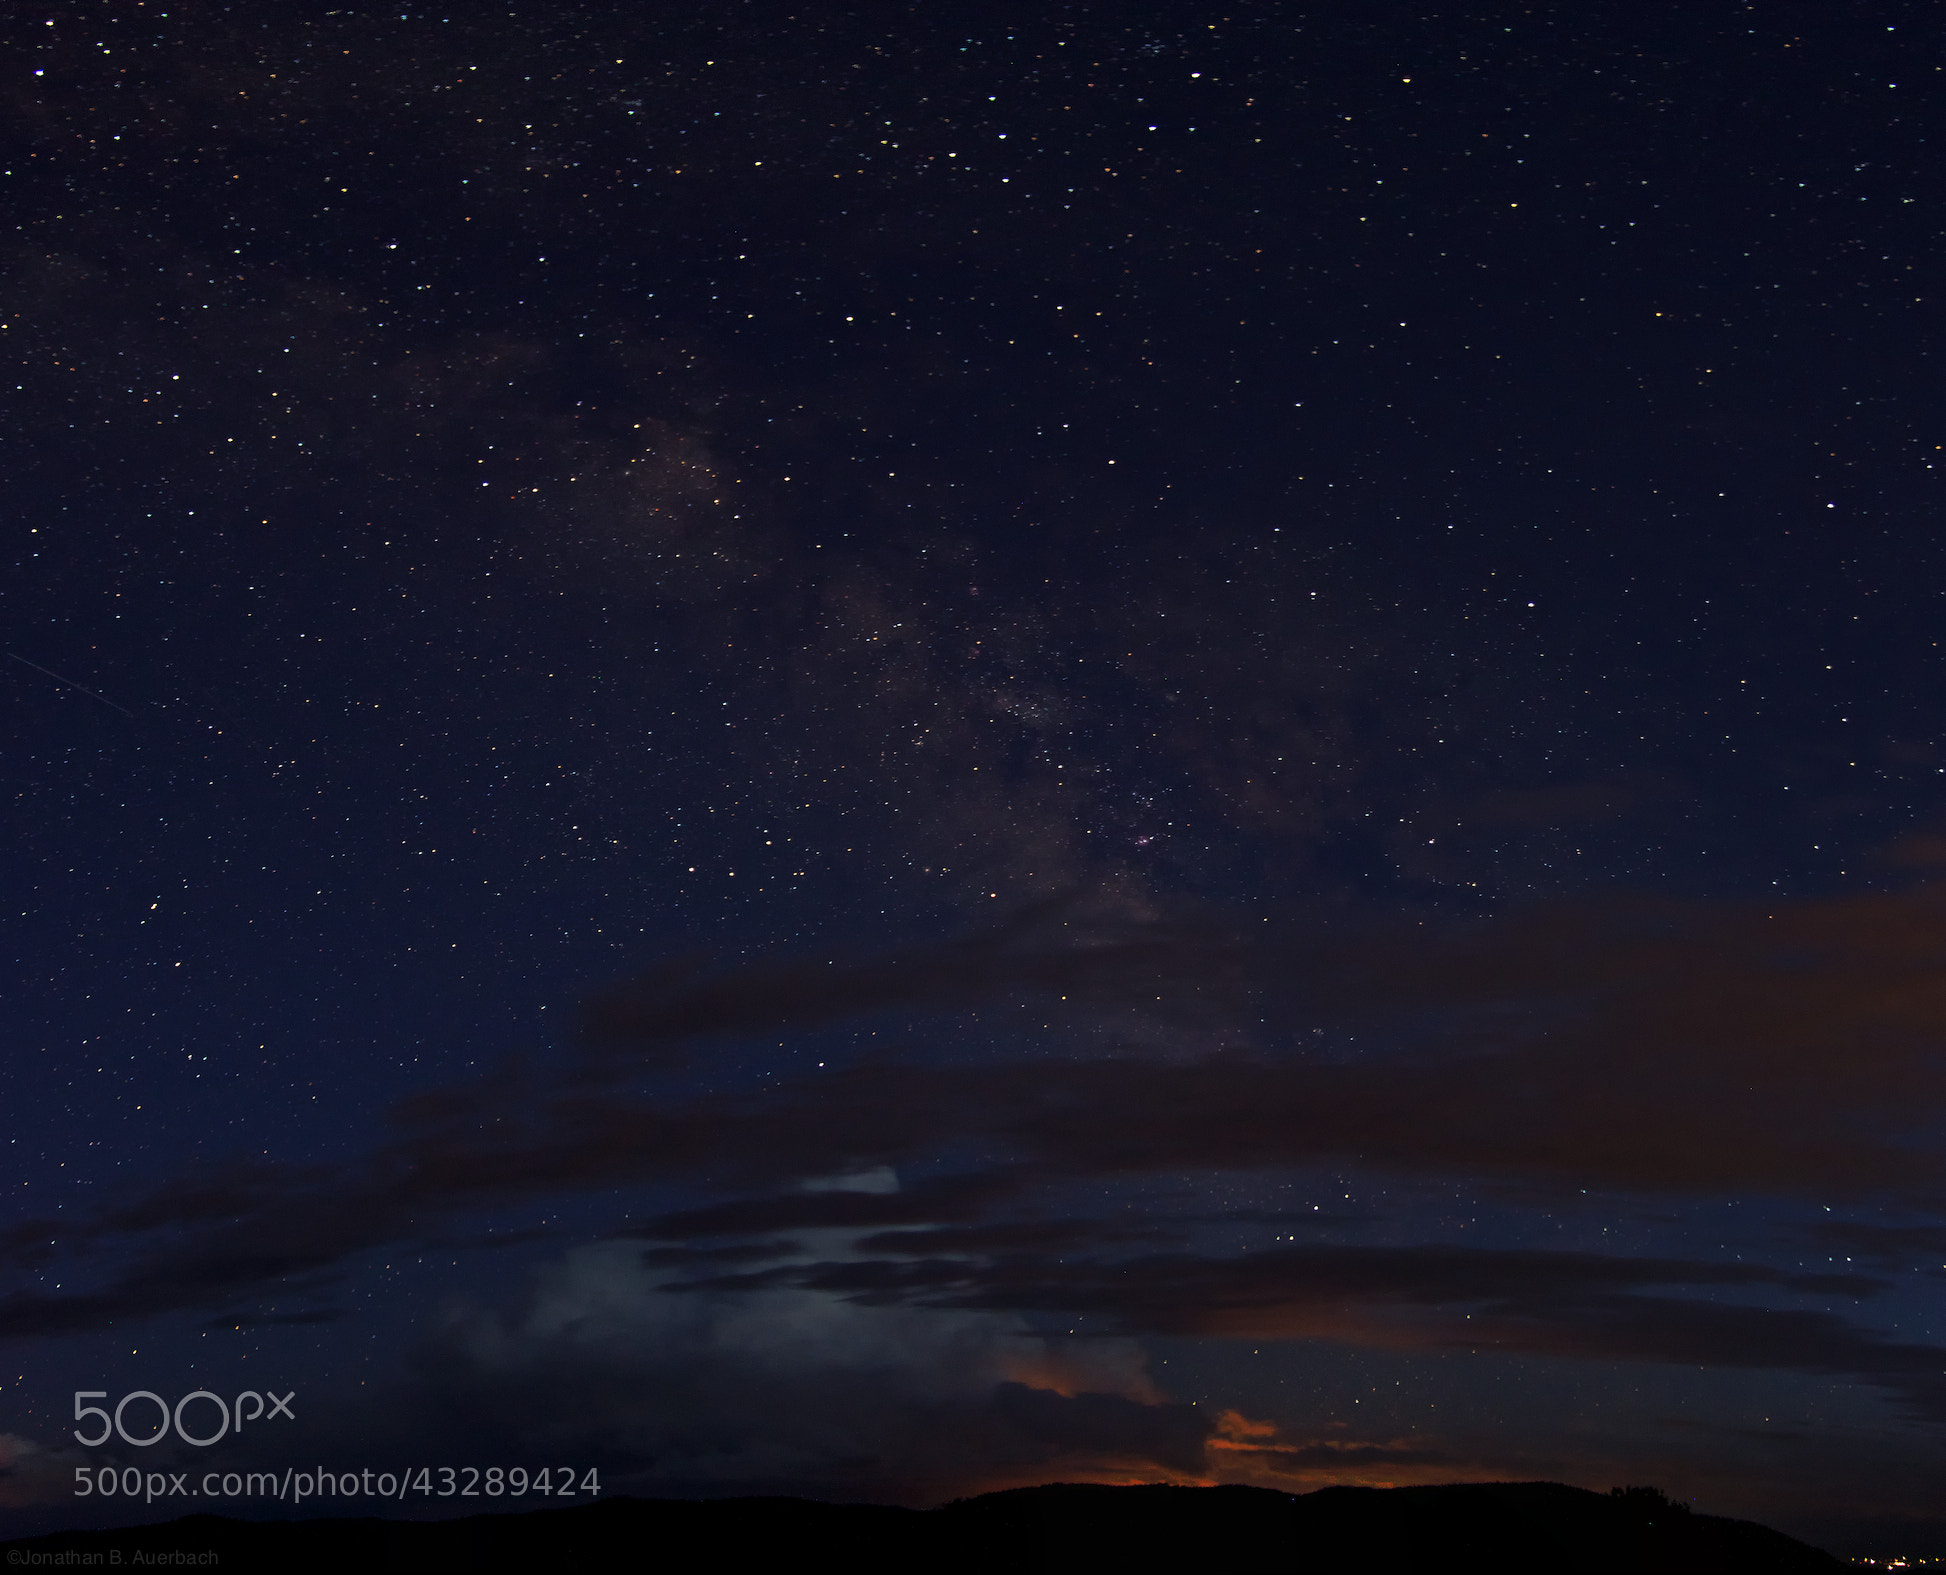 Photograph Nightscape by Jonathan Auerbach on 500px